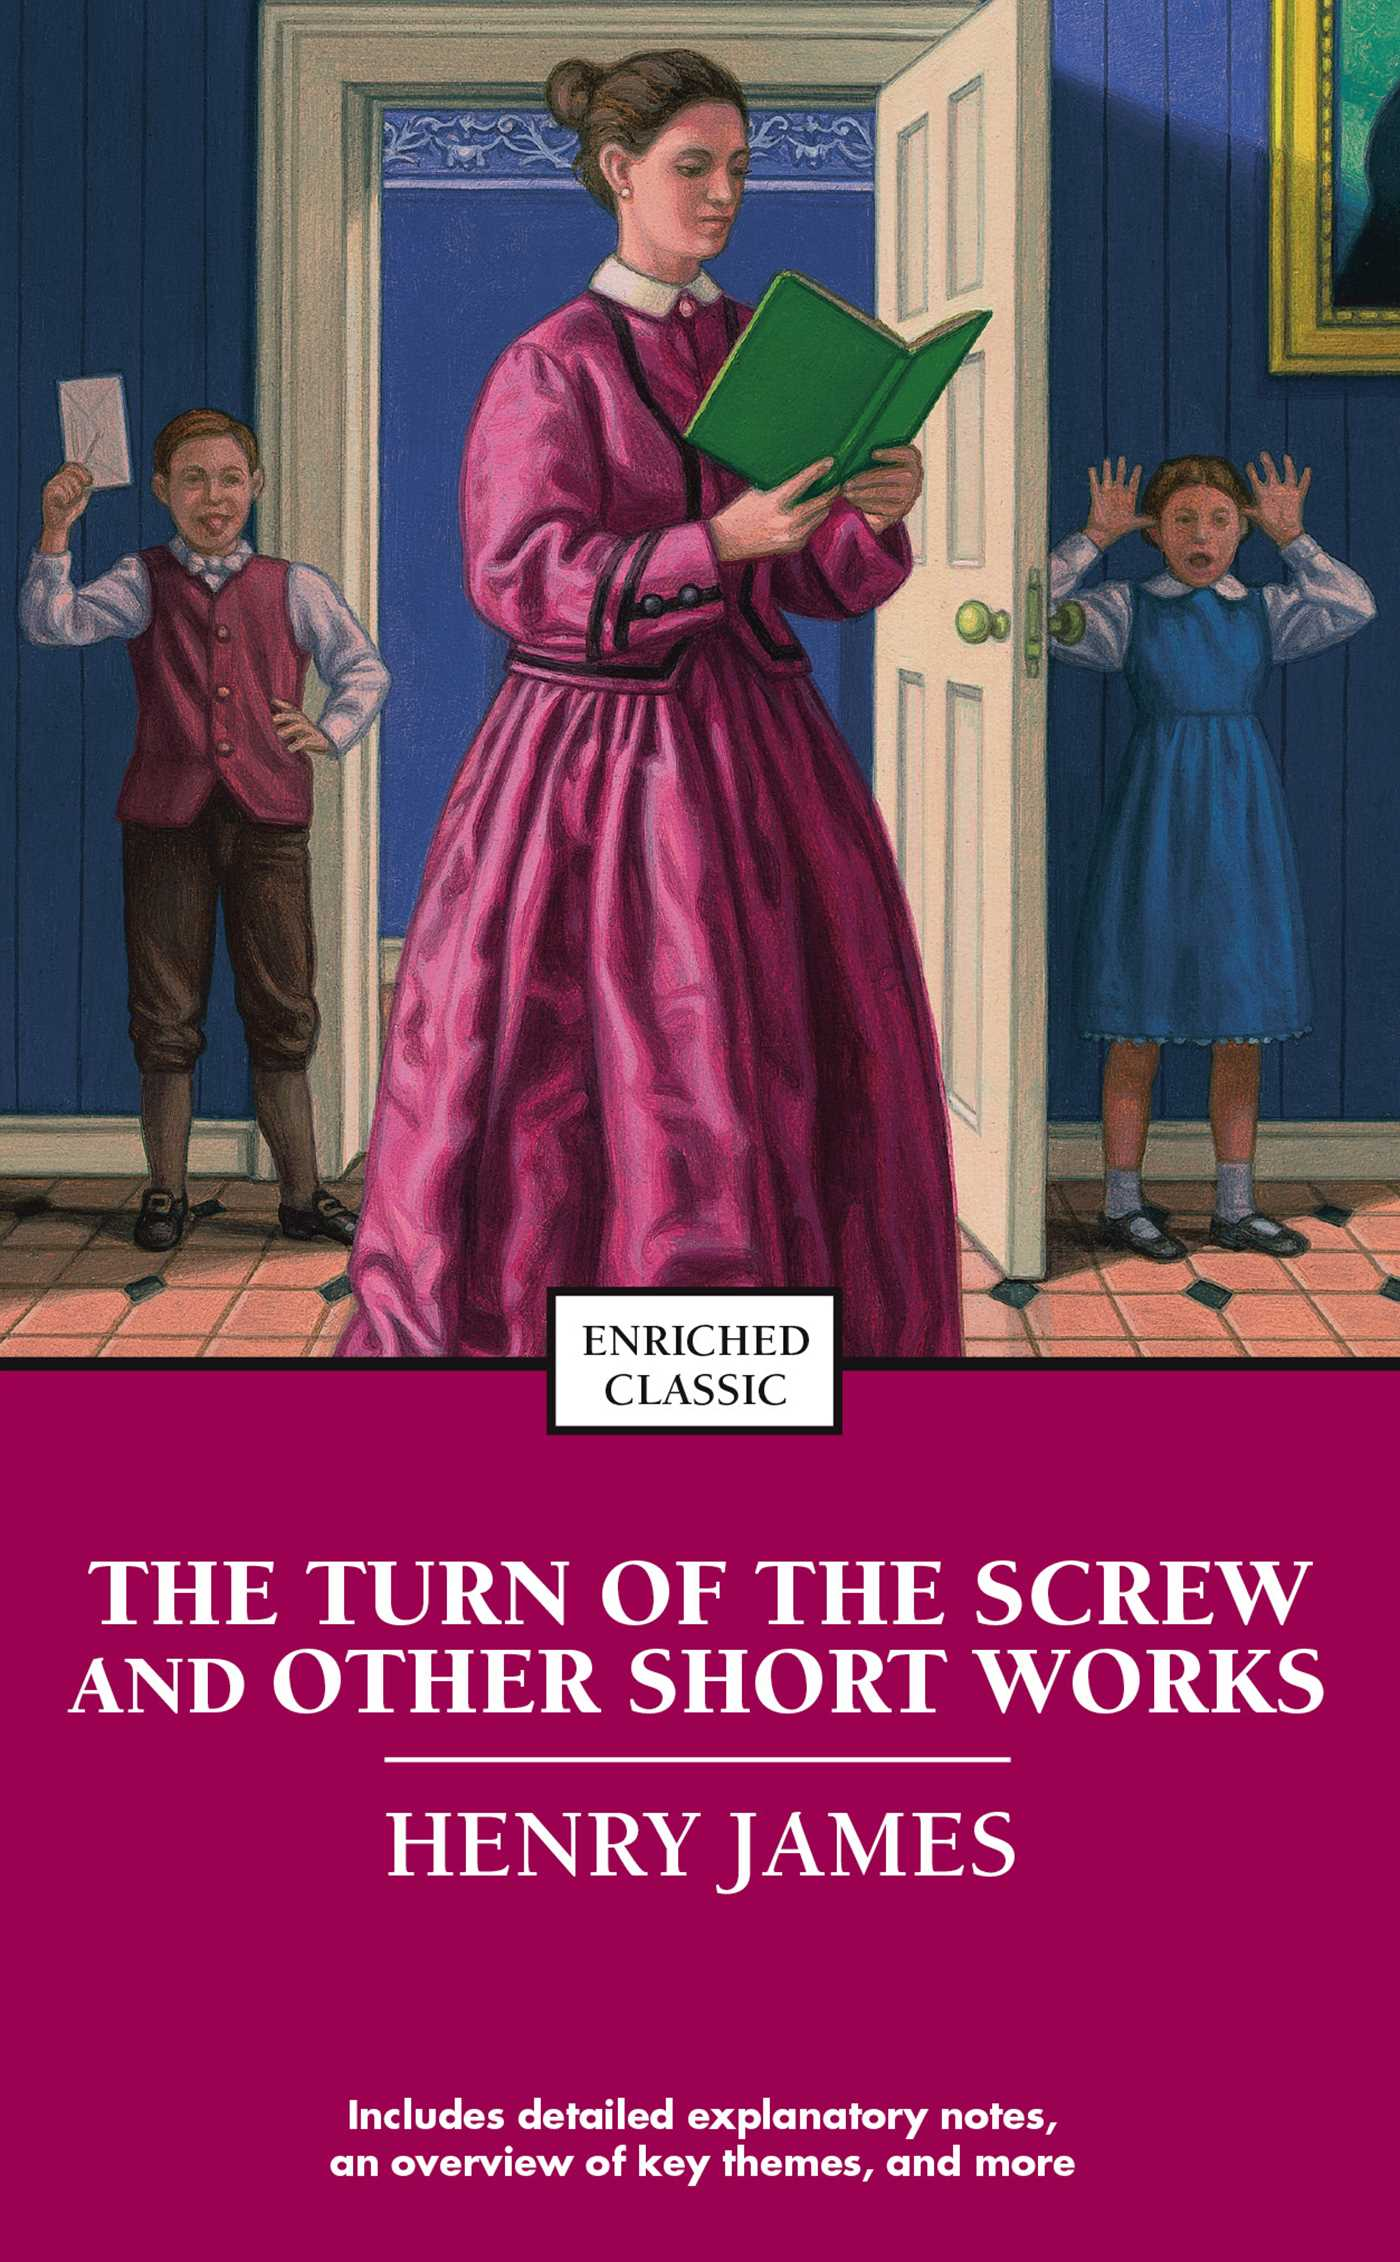 an analysis of the turn of the screw The turn of the screw has 71,844 ratings and 4,915 reviews paquita maria said: words words words is the house haunted words words words words words is s.